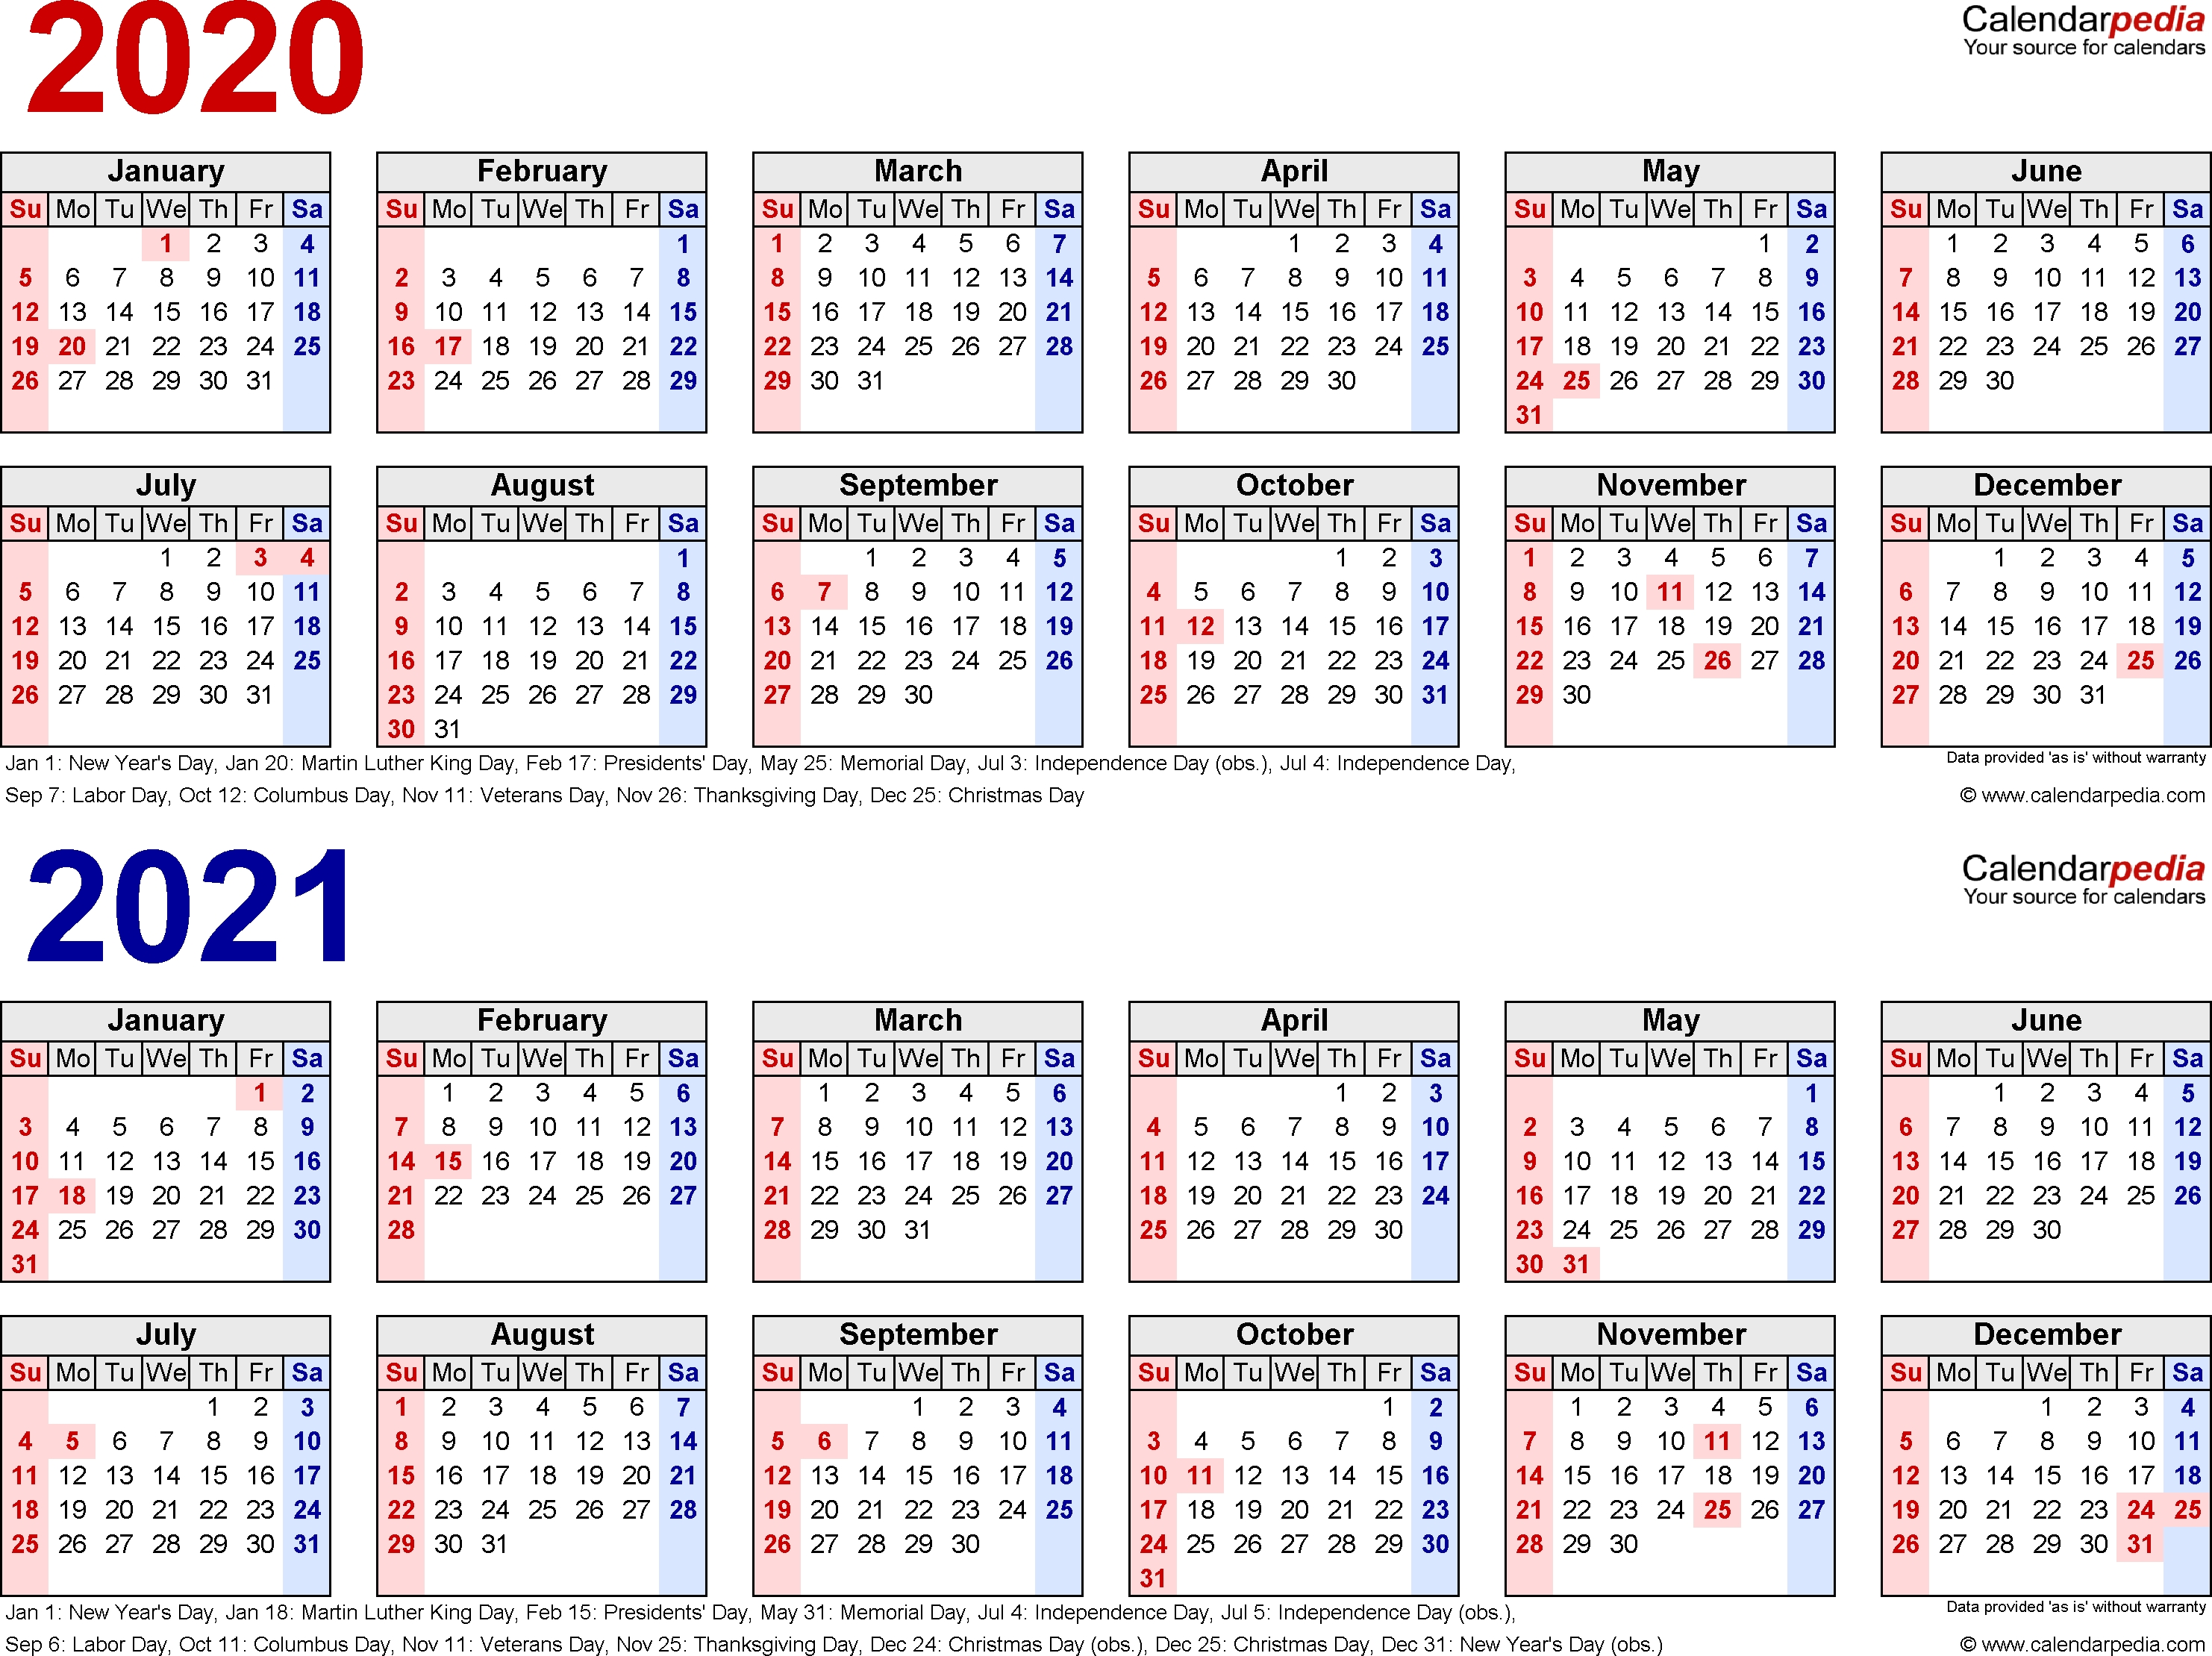 2020-2021 Calendar - Free Printable Two-Year Excel Calendars 3 Year Calendar 2020